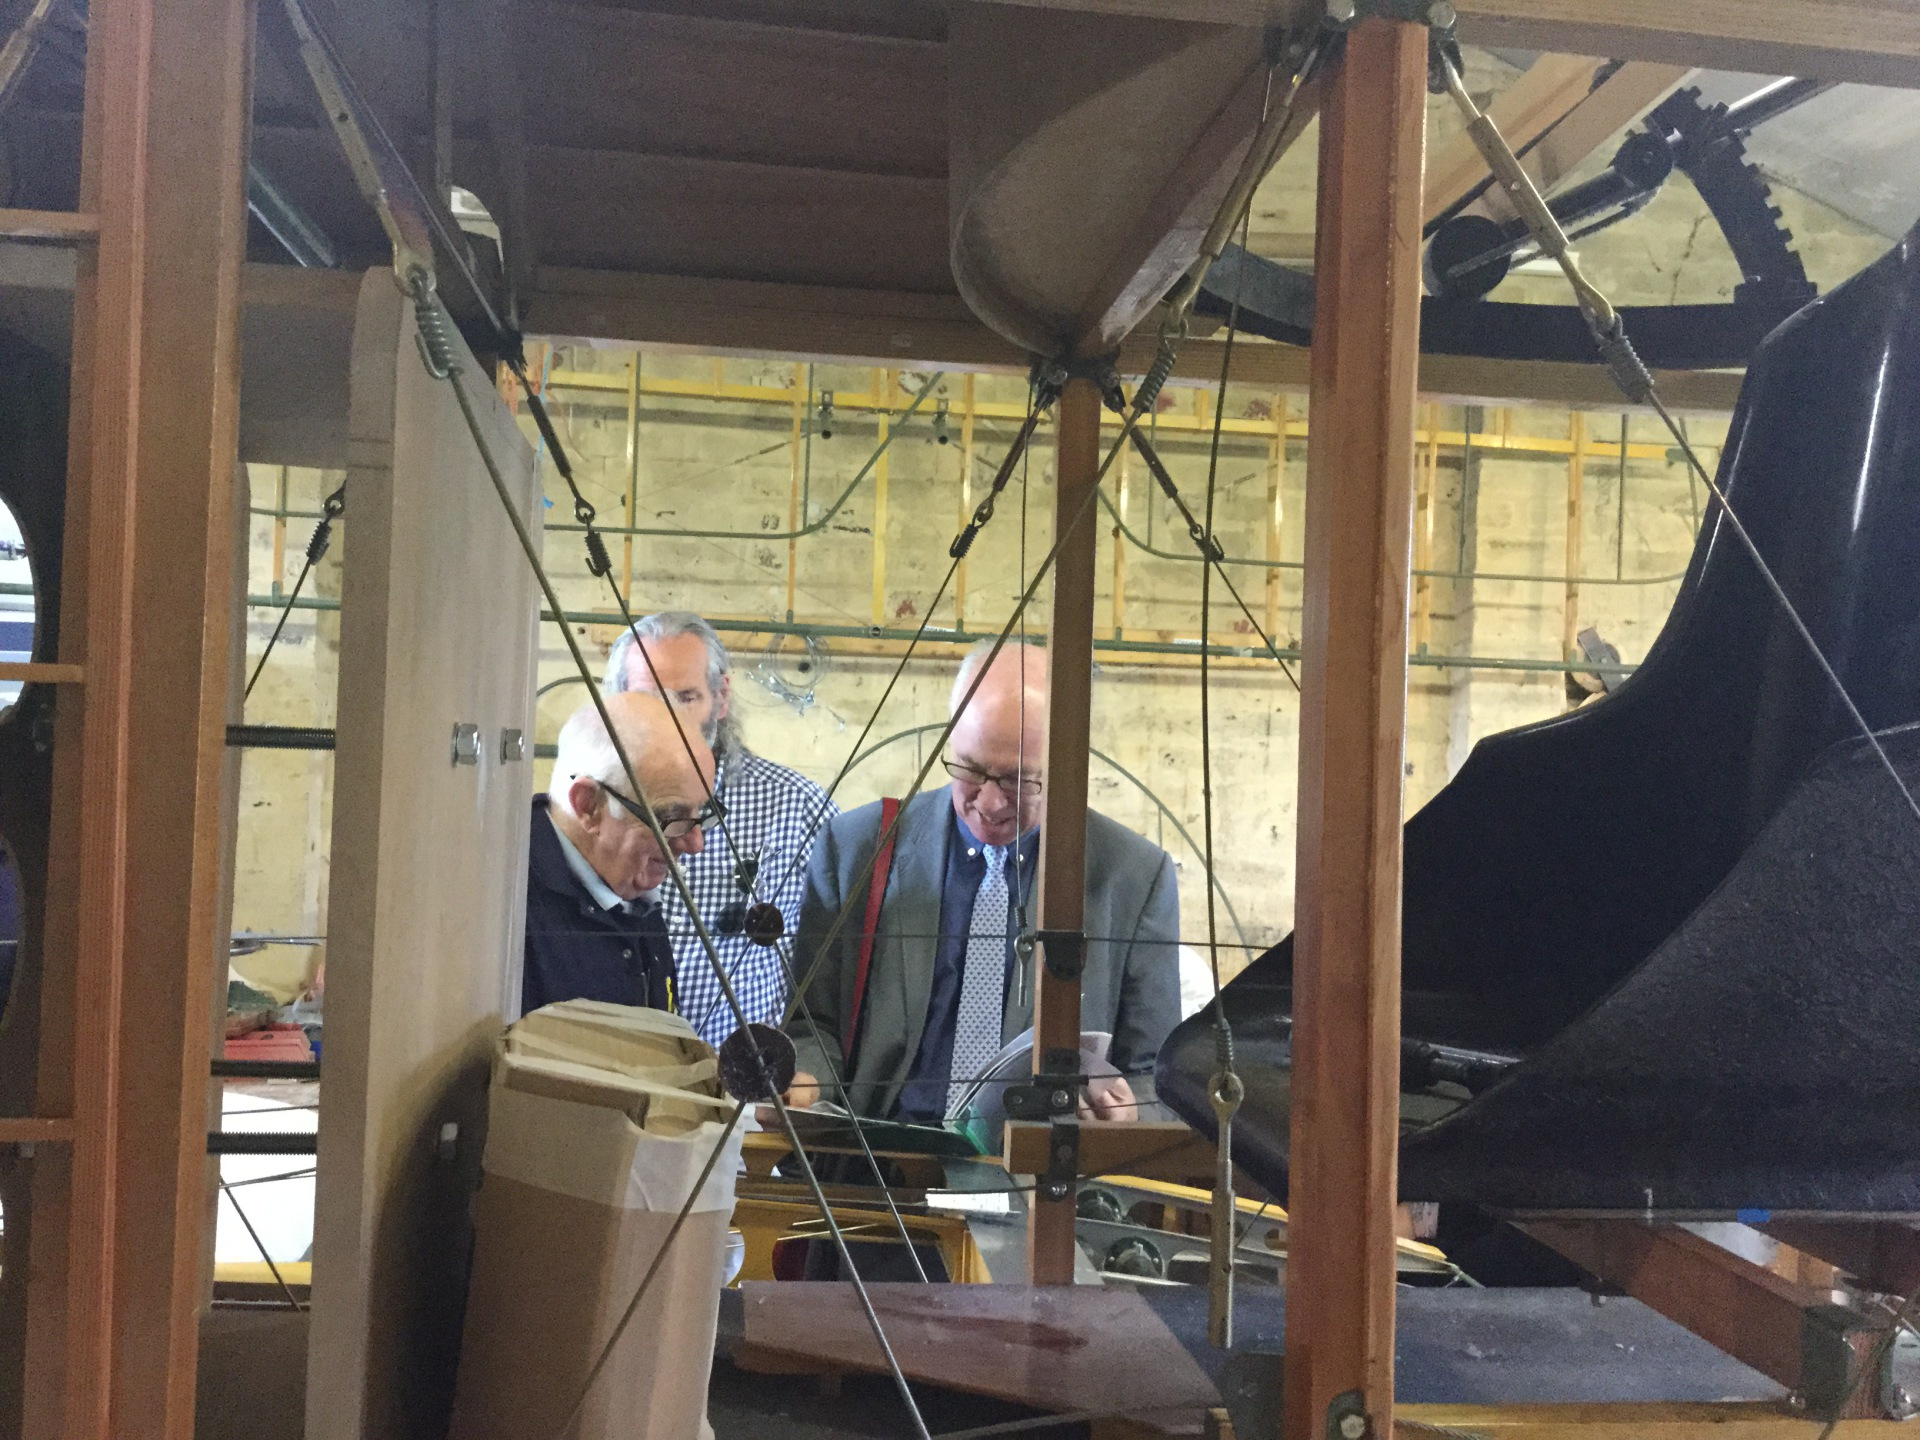 Meeting members of the Aircraft Preservation Society of Scotland building Sopwith Strutter replica at East Fortune